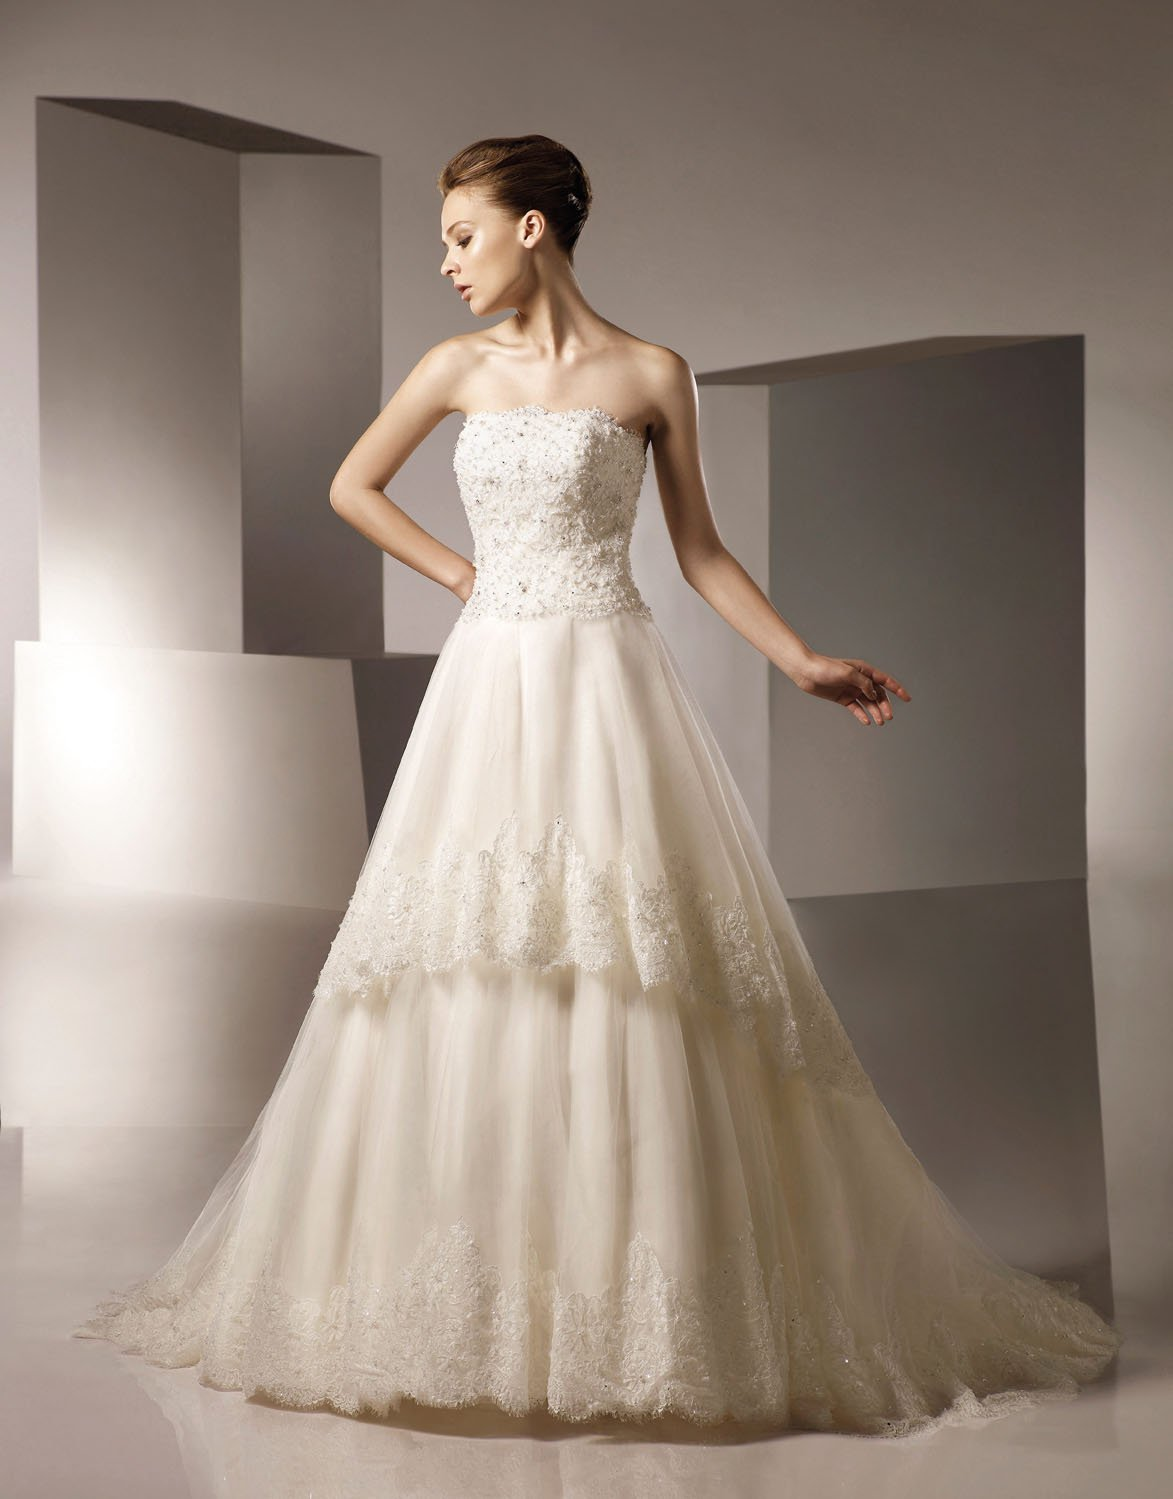 A-line Straight Neckline Appliqued Beading Tuller Wedding Dress Bridal Gown aq0028